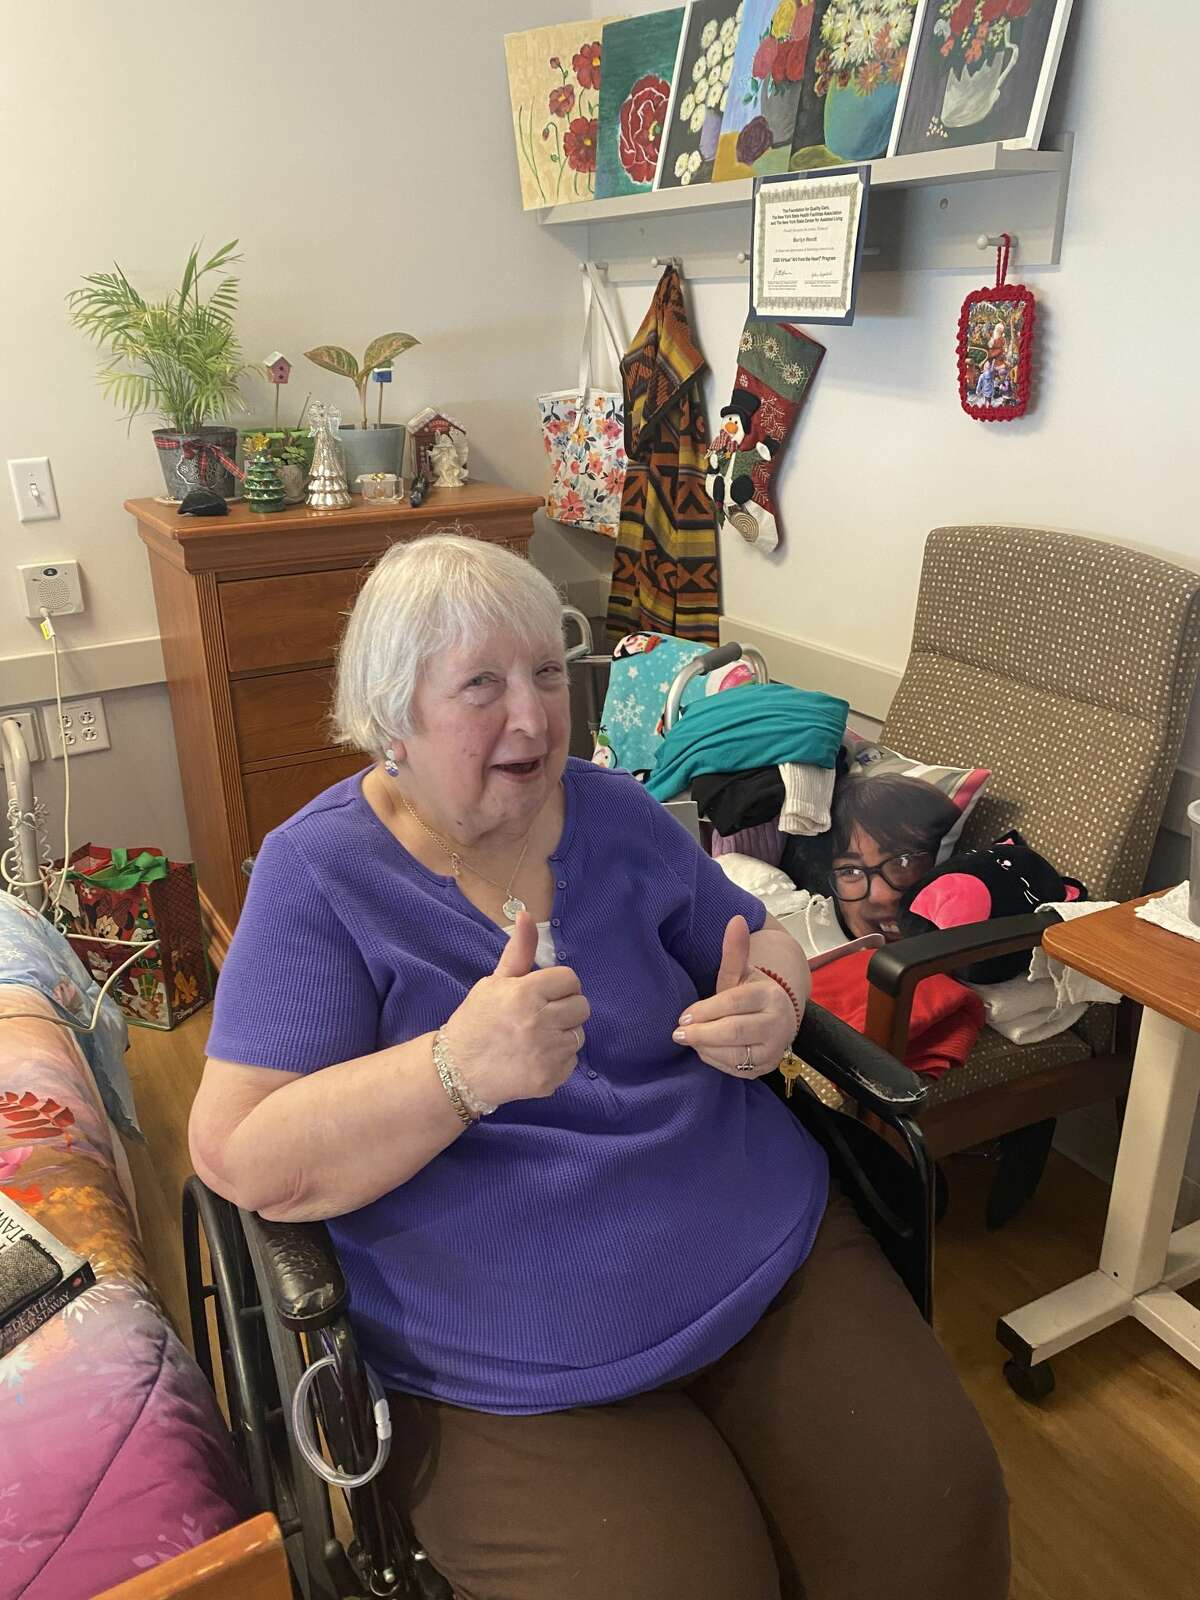 A resident of Shaker Place, the Albany County-run nursing home in Colonie, N.Y., gives a thumbs up after receiving the facility's first vaccination against COVID-19. County officials declined to release the resident's name, citing privacy concerns.